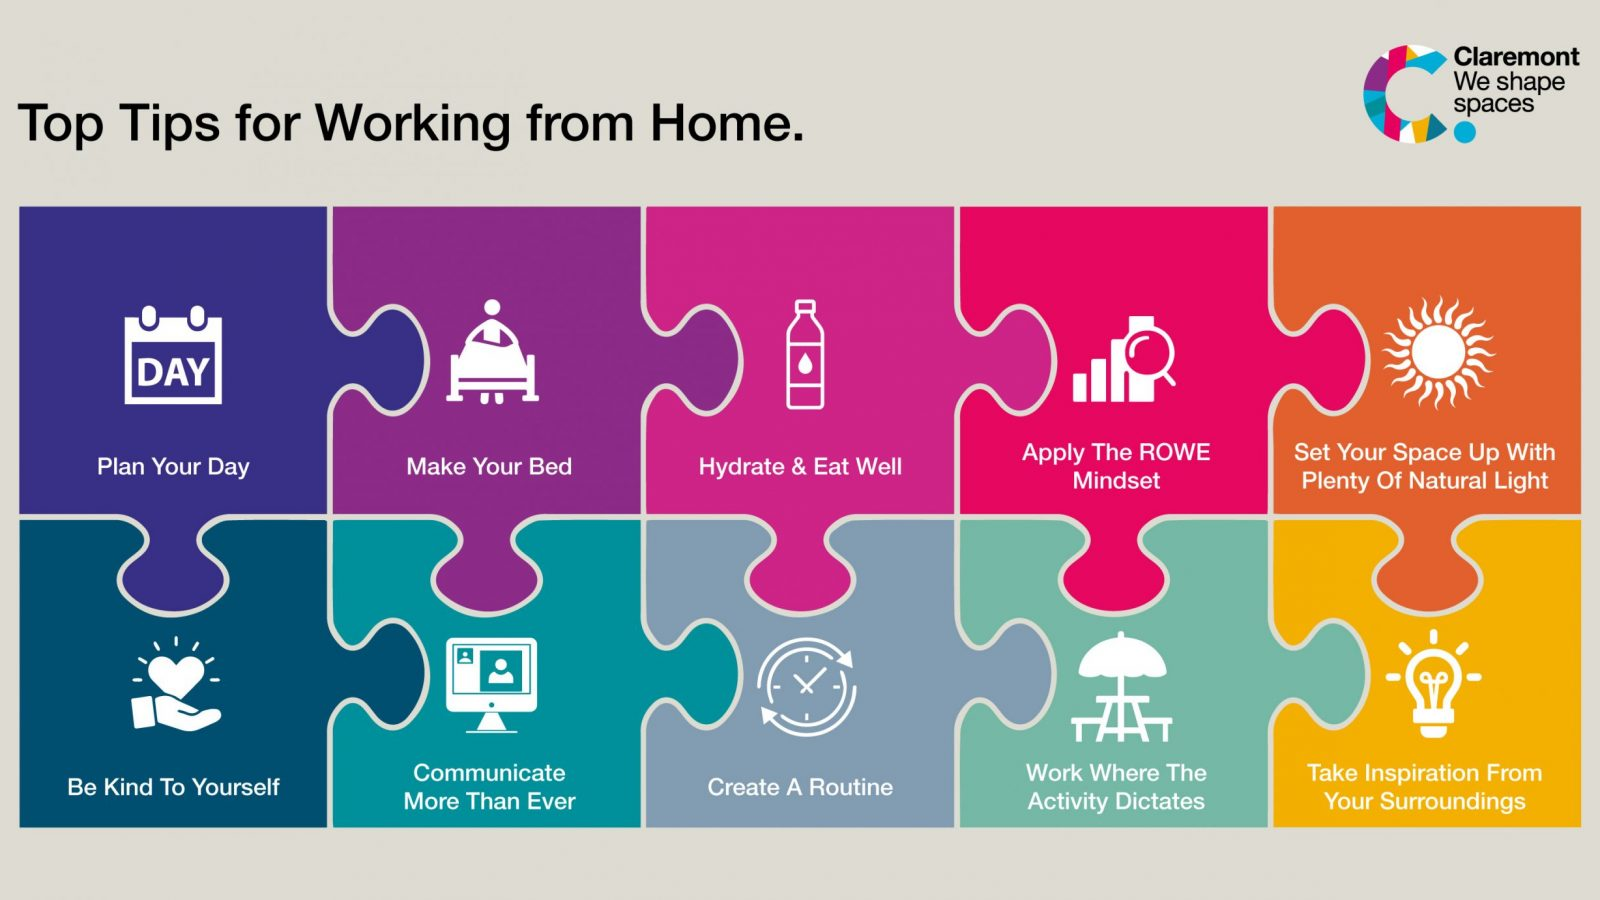 Our top 10 tips for working from home.